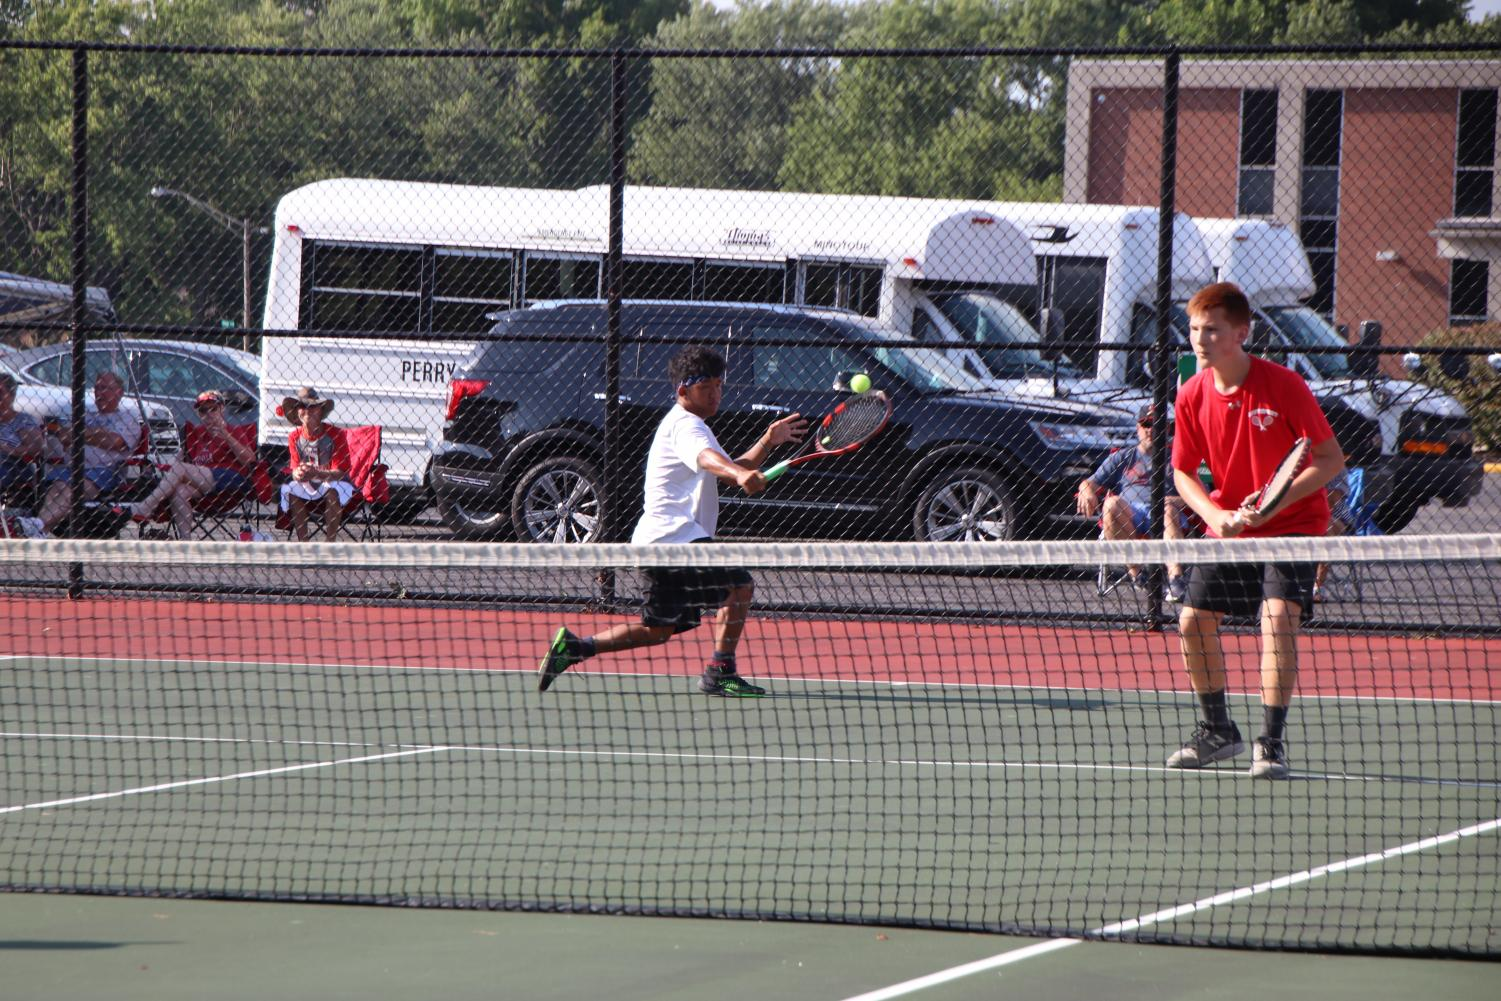 Sophomore+Thang+Ching+returns+the+ball+his+opponent+playing+in+doubles.+Ching+plays+with+Senior+Andrew+Nguyen+in+his+doubles.+Ching+and+Nguyen+lost+their+double+going+into+three+sets.+